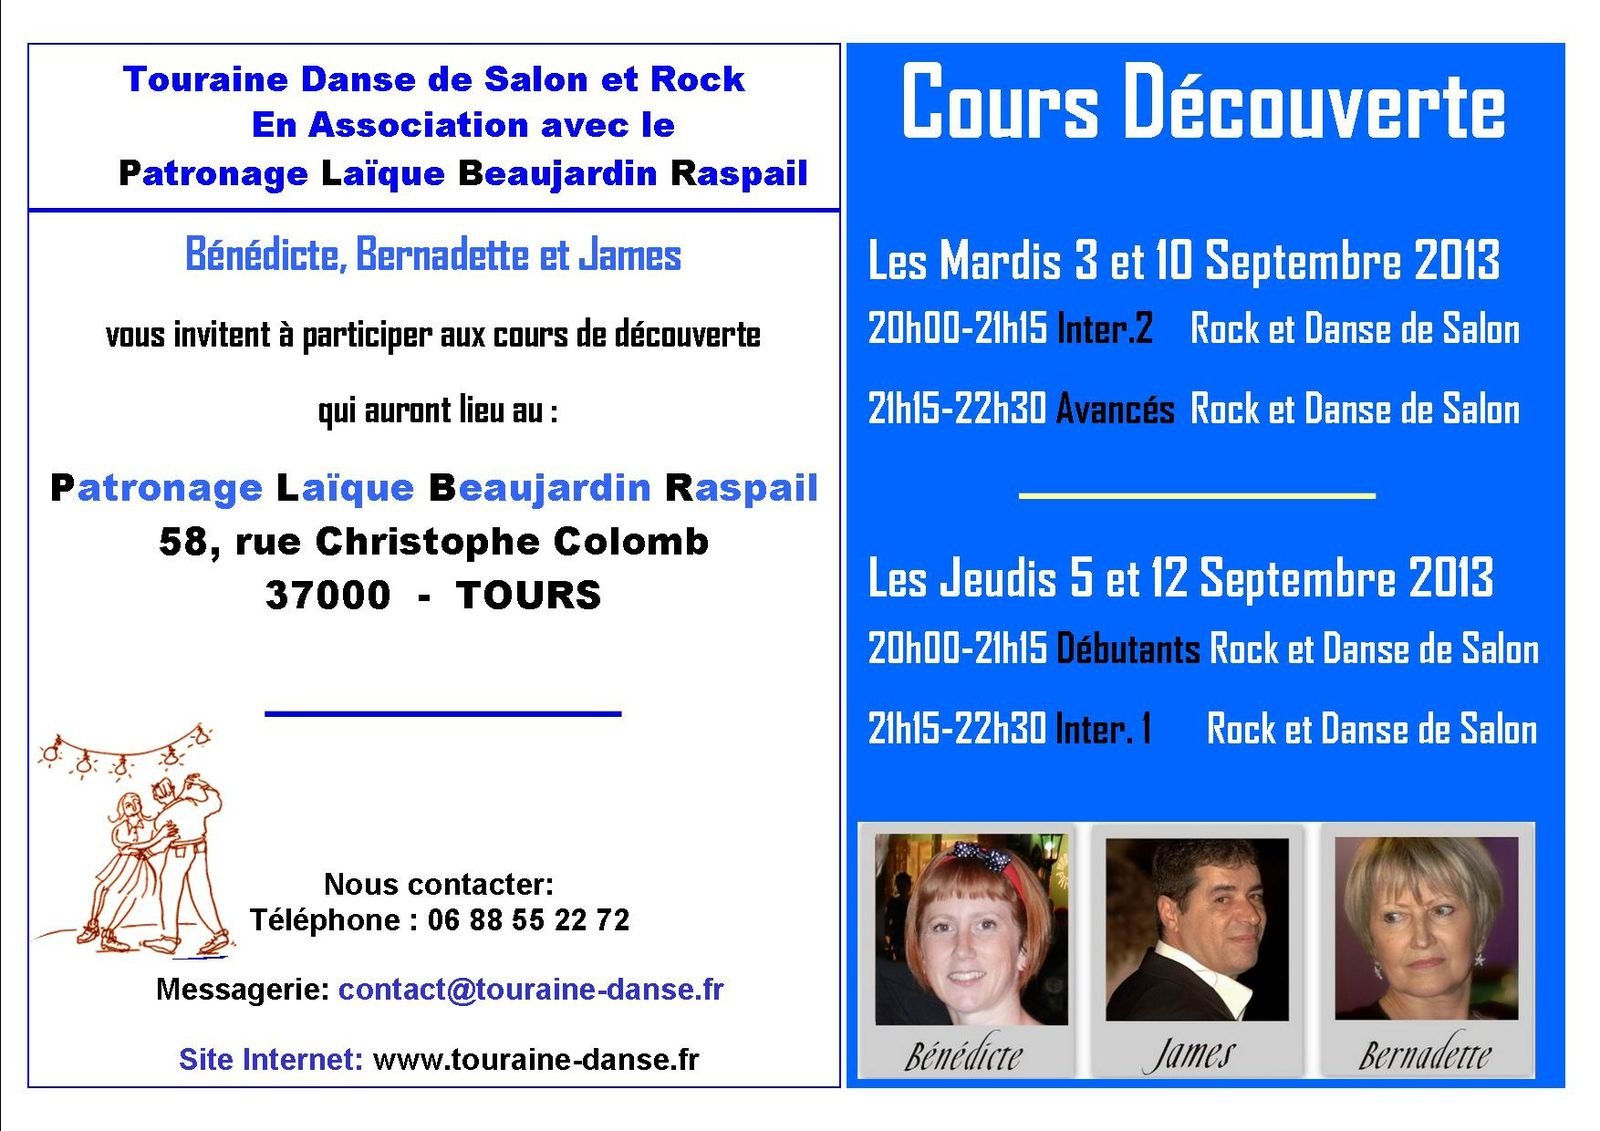 Cours-Decouverte-et-Bulletin-d-inscription-Danse--copie-1.jpg